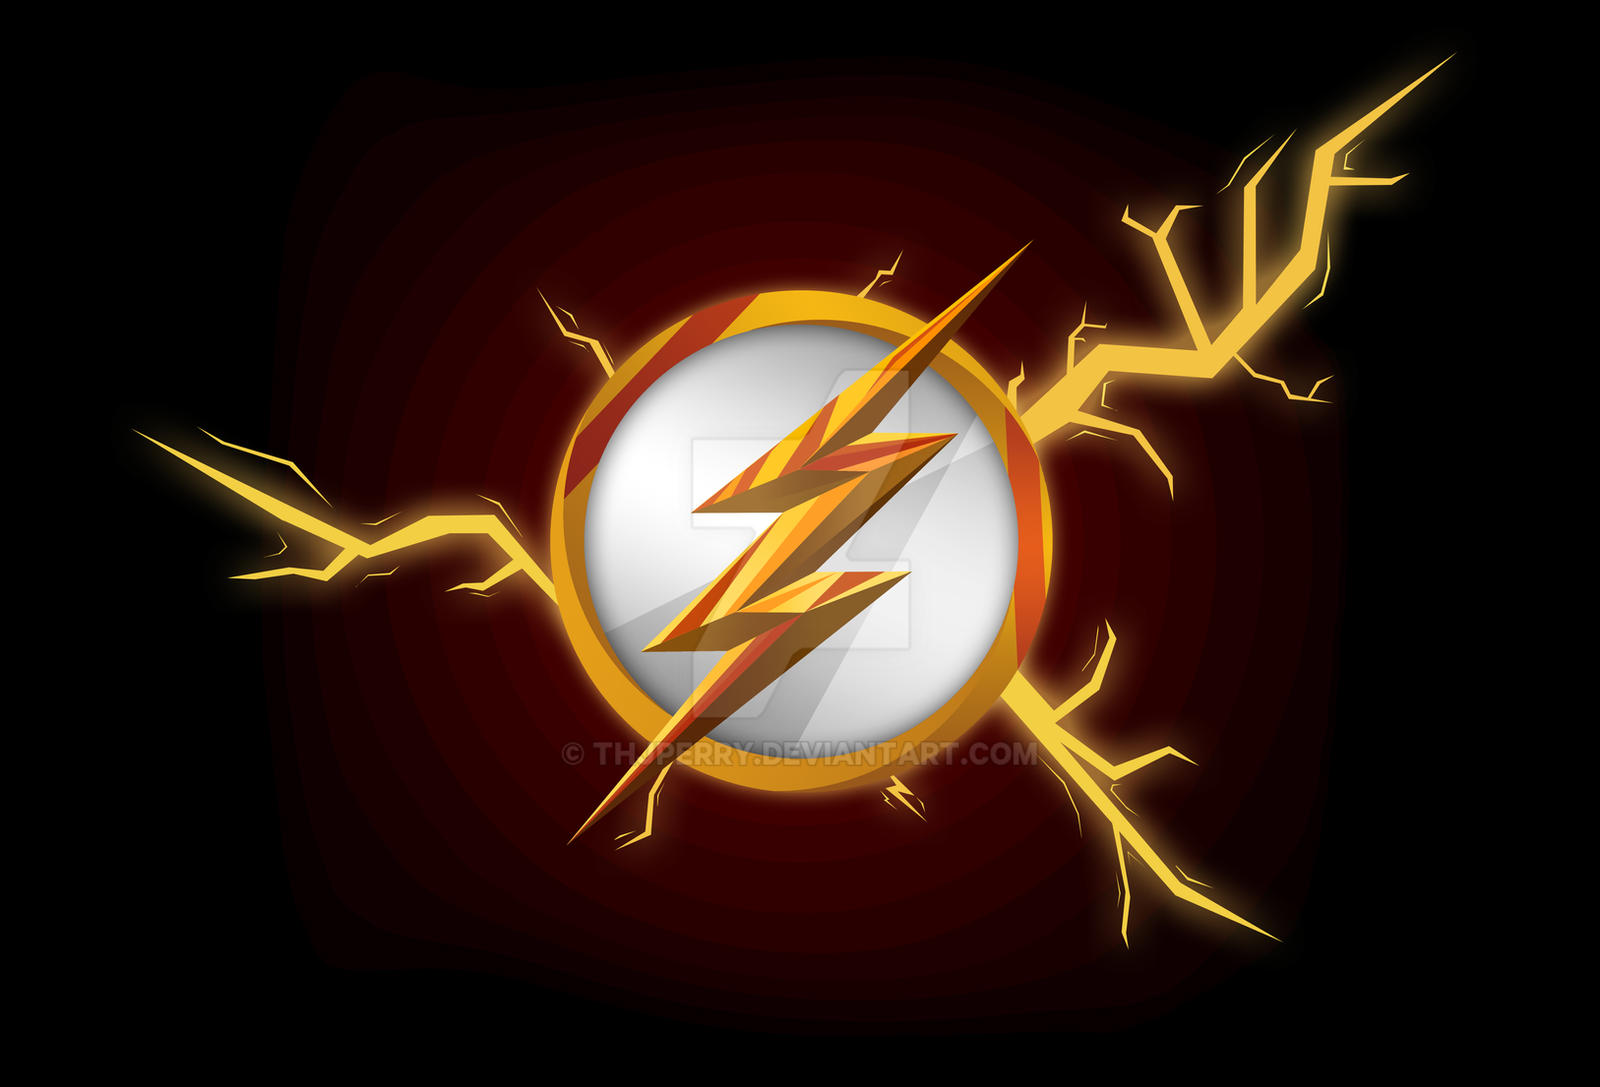 the flash emblem wallpaper by thjperry on deviantart